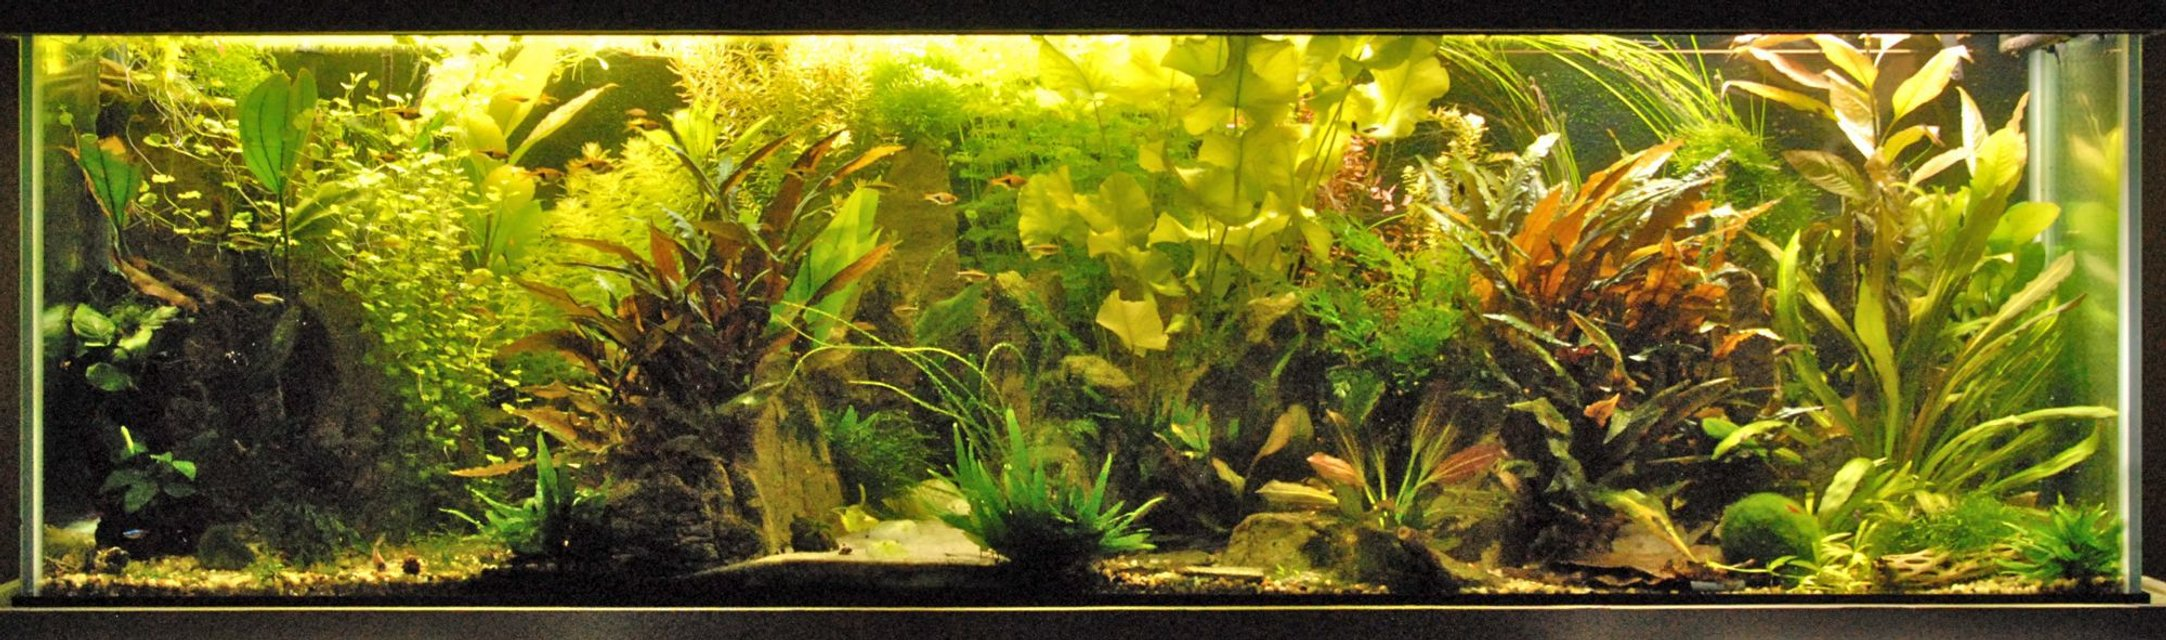 Rated #1: 120 Gallons Planted Tank - The main tank